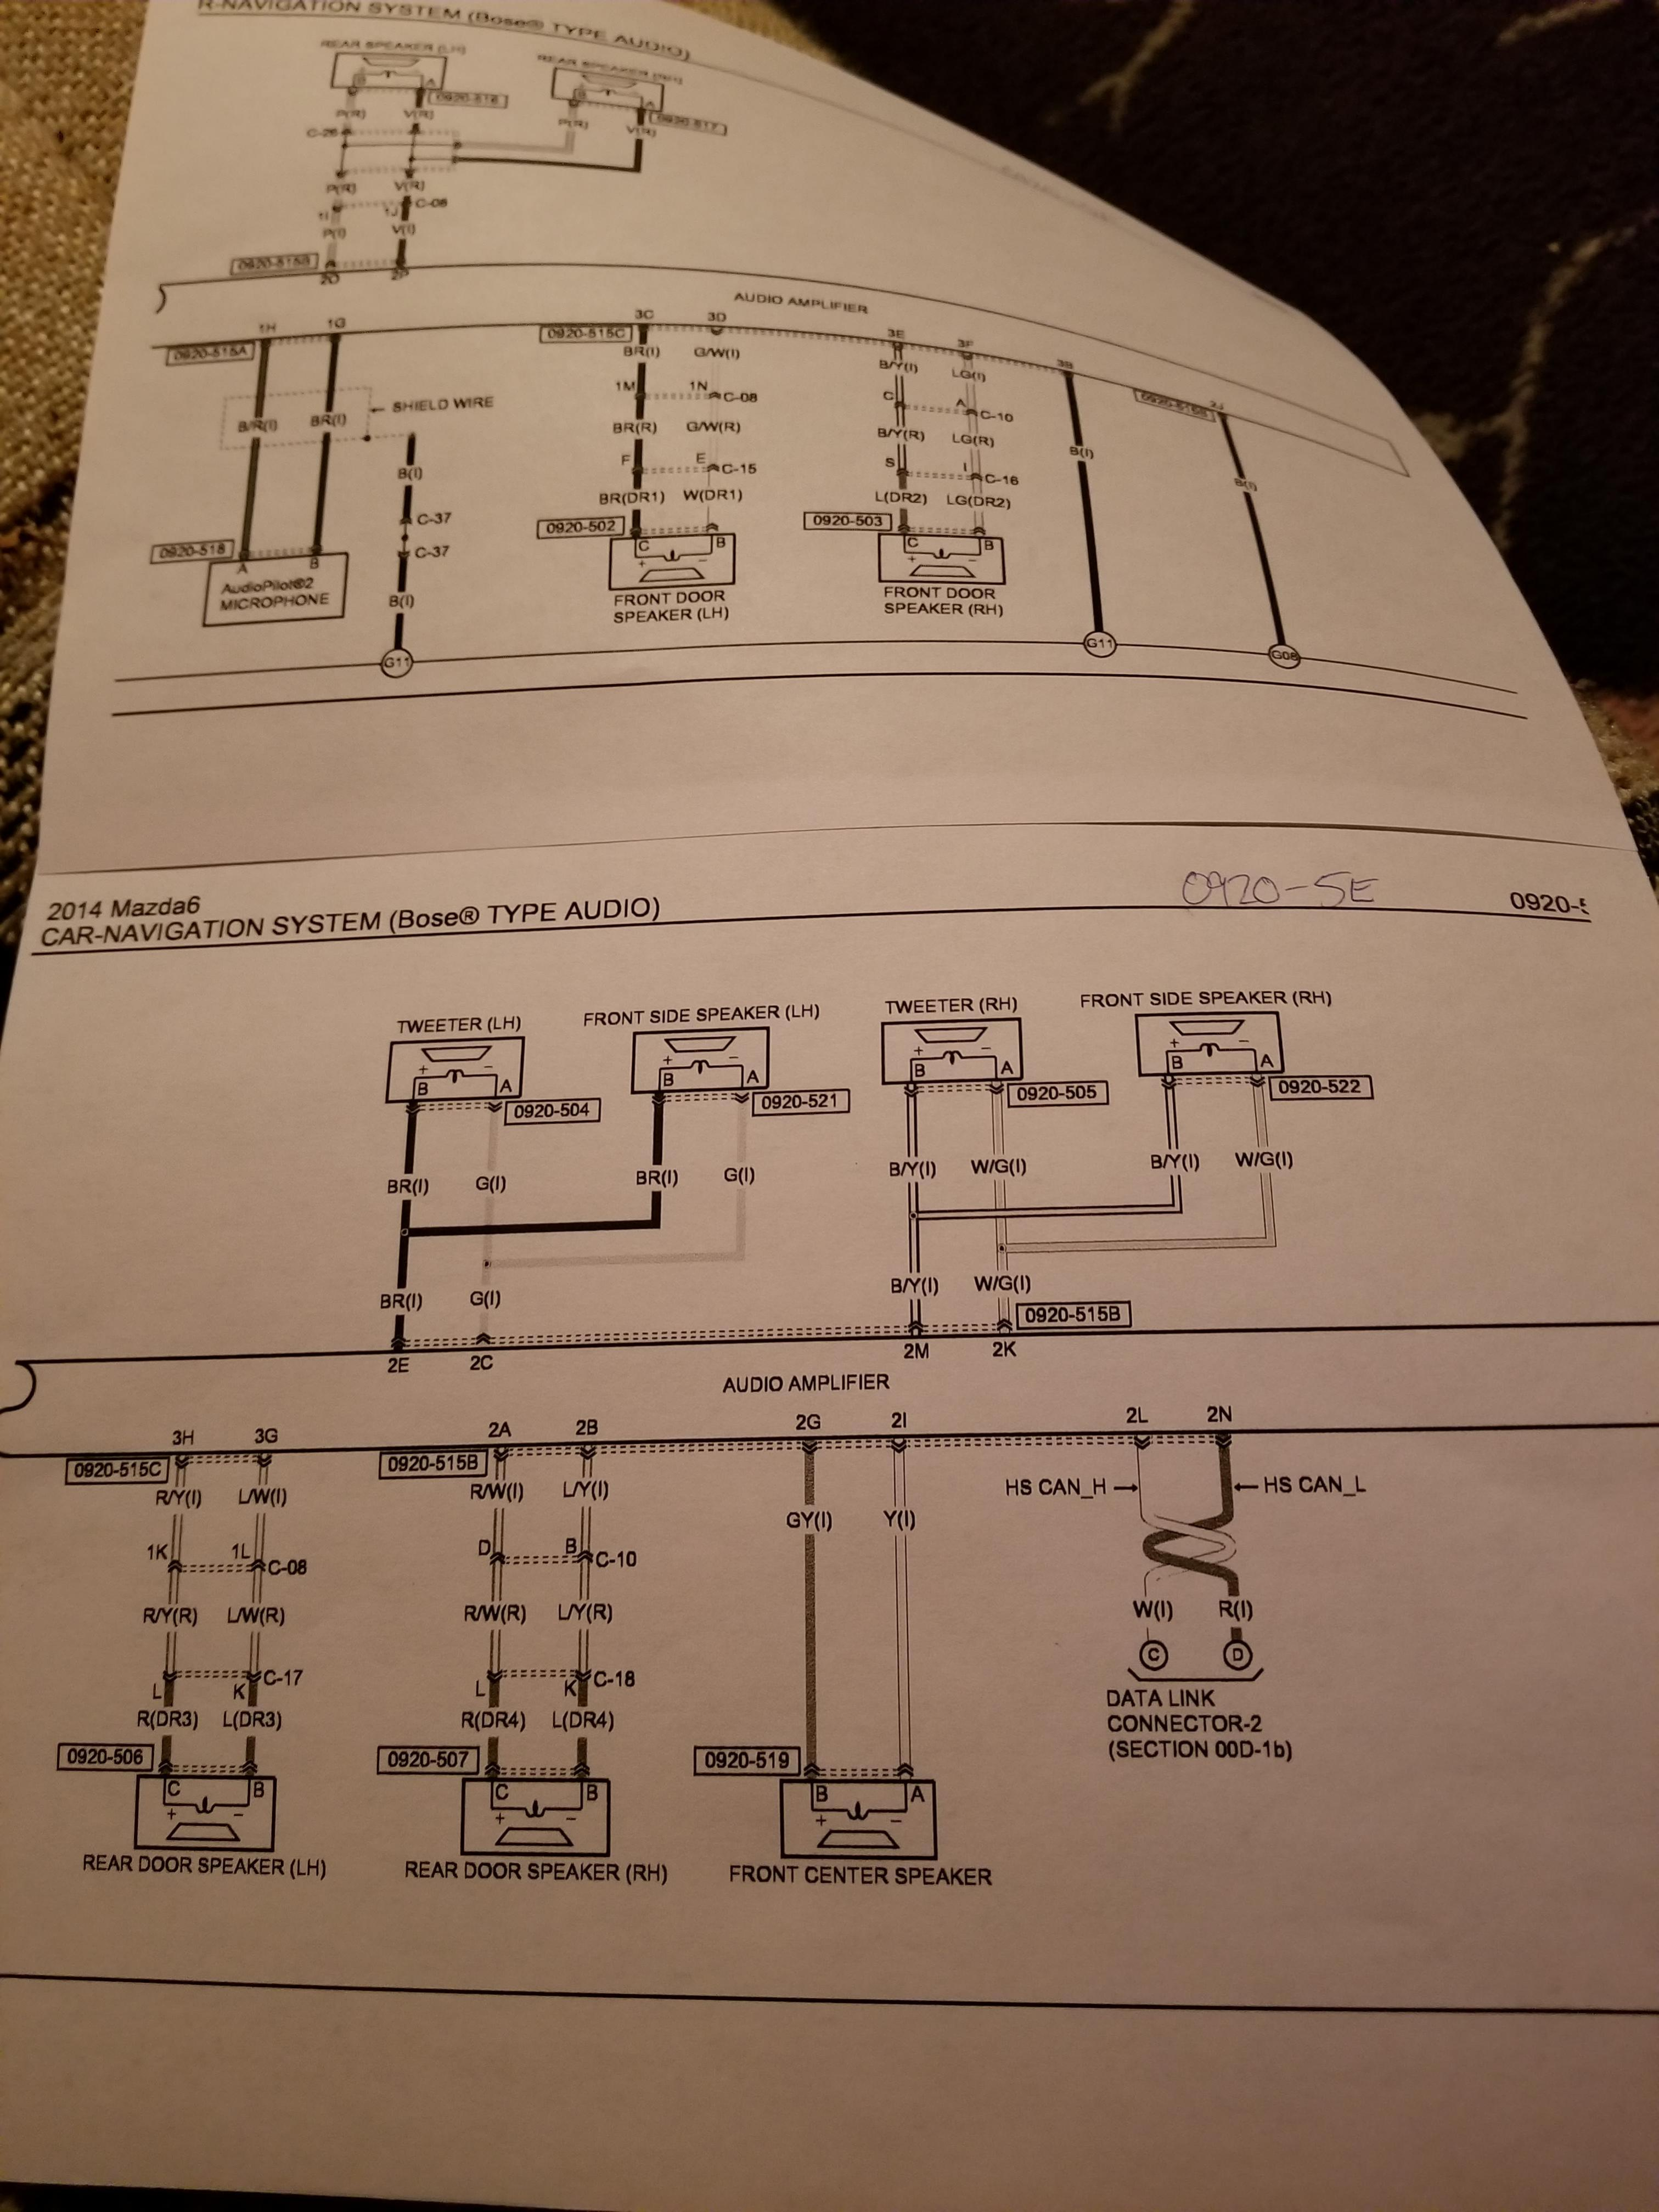 Wiring Diagram Together With 2006 Mazda 6 Wiring Diagram Besides